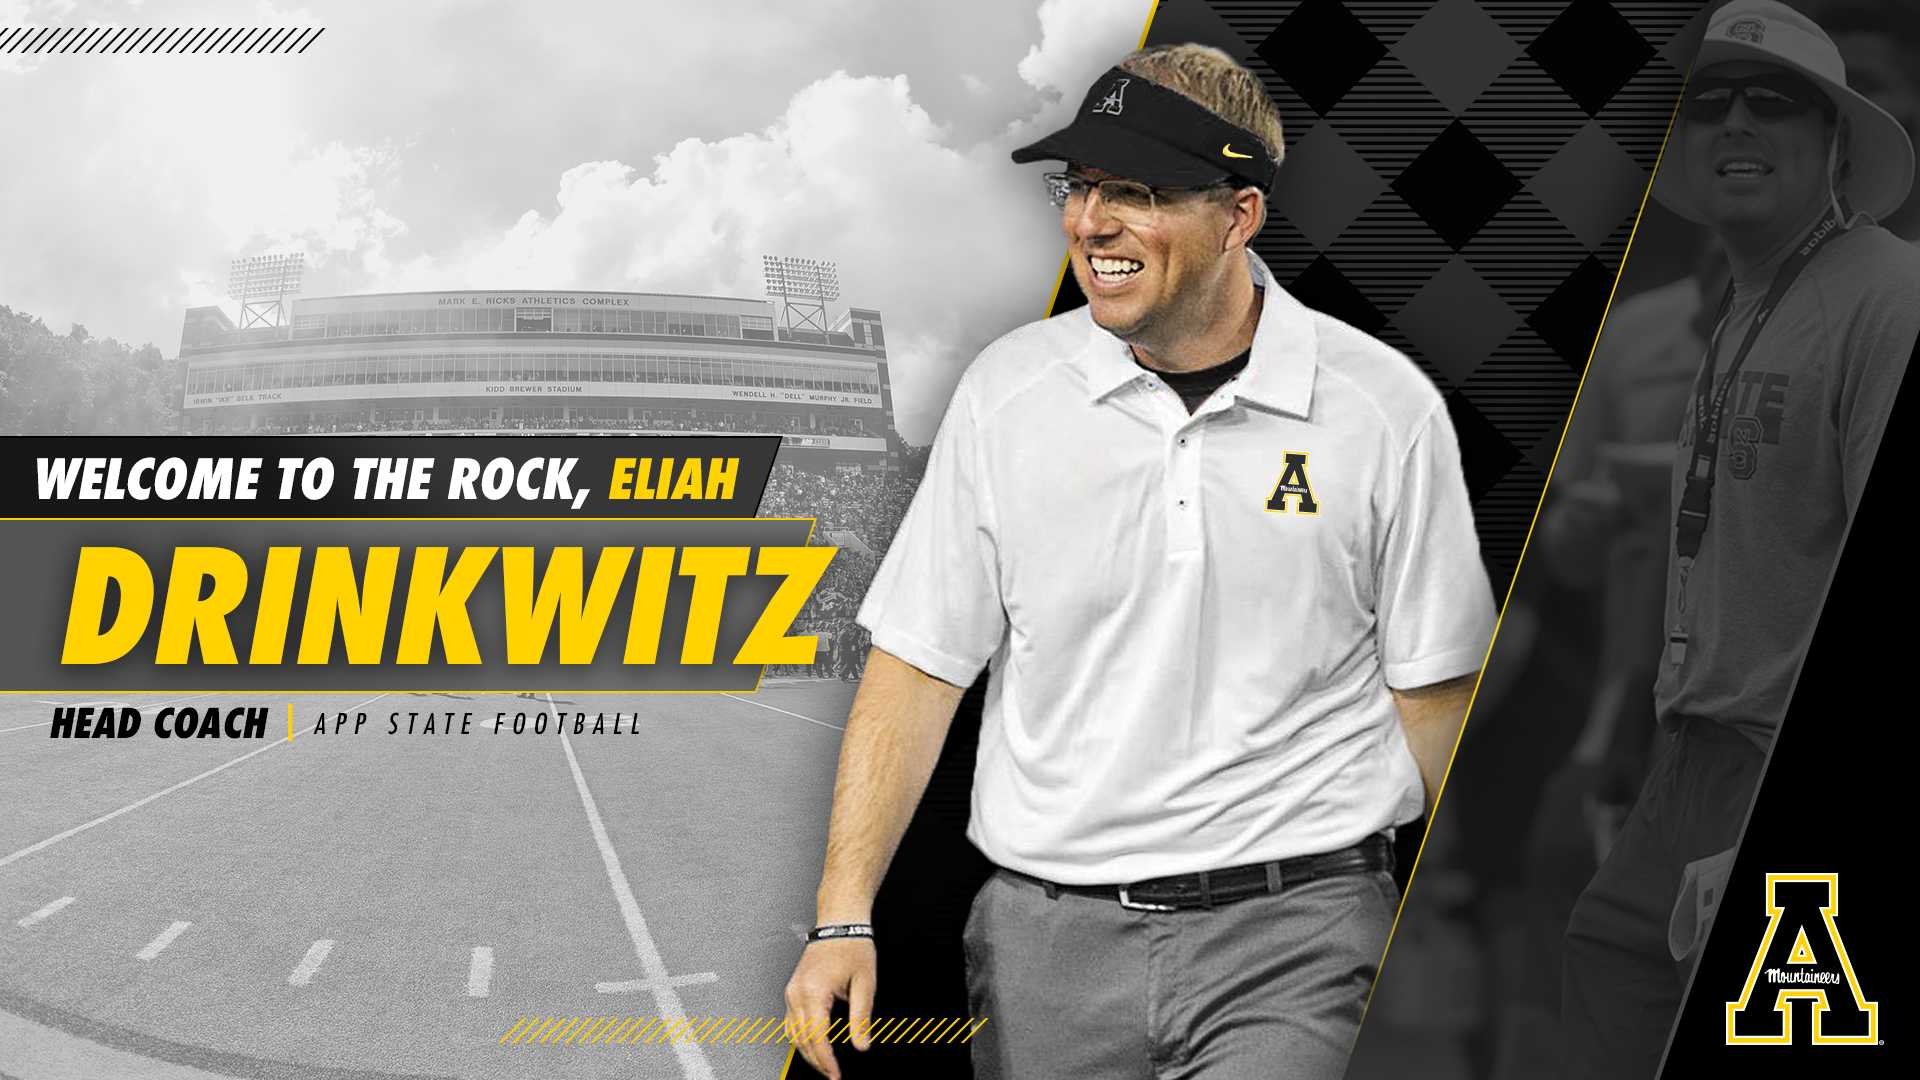 NC State's Drinkwitz tabbed as new head coach at App State